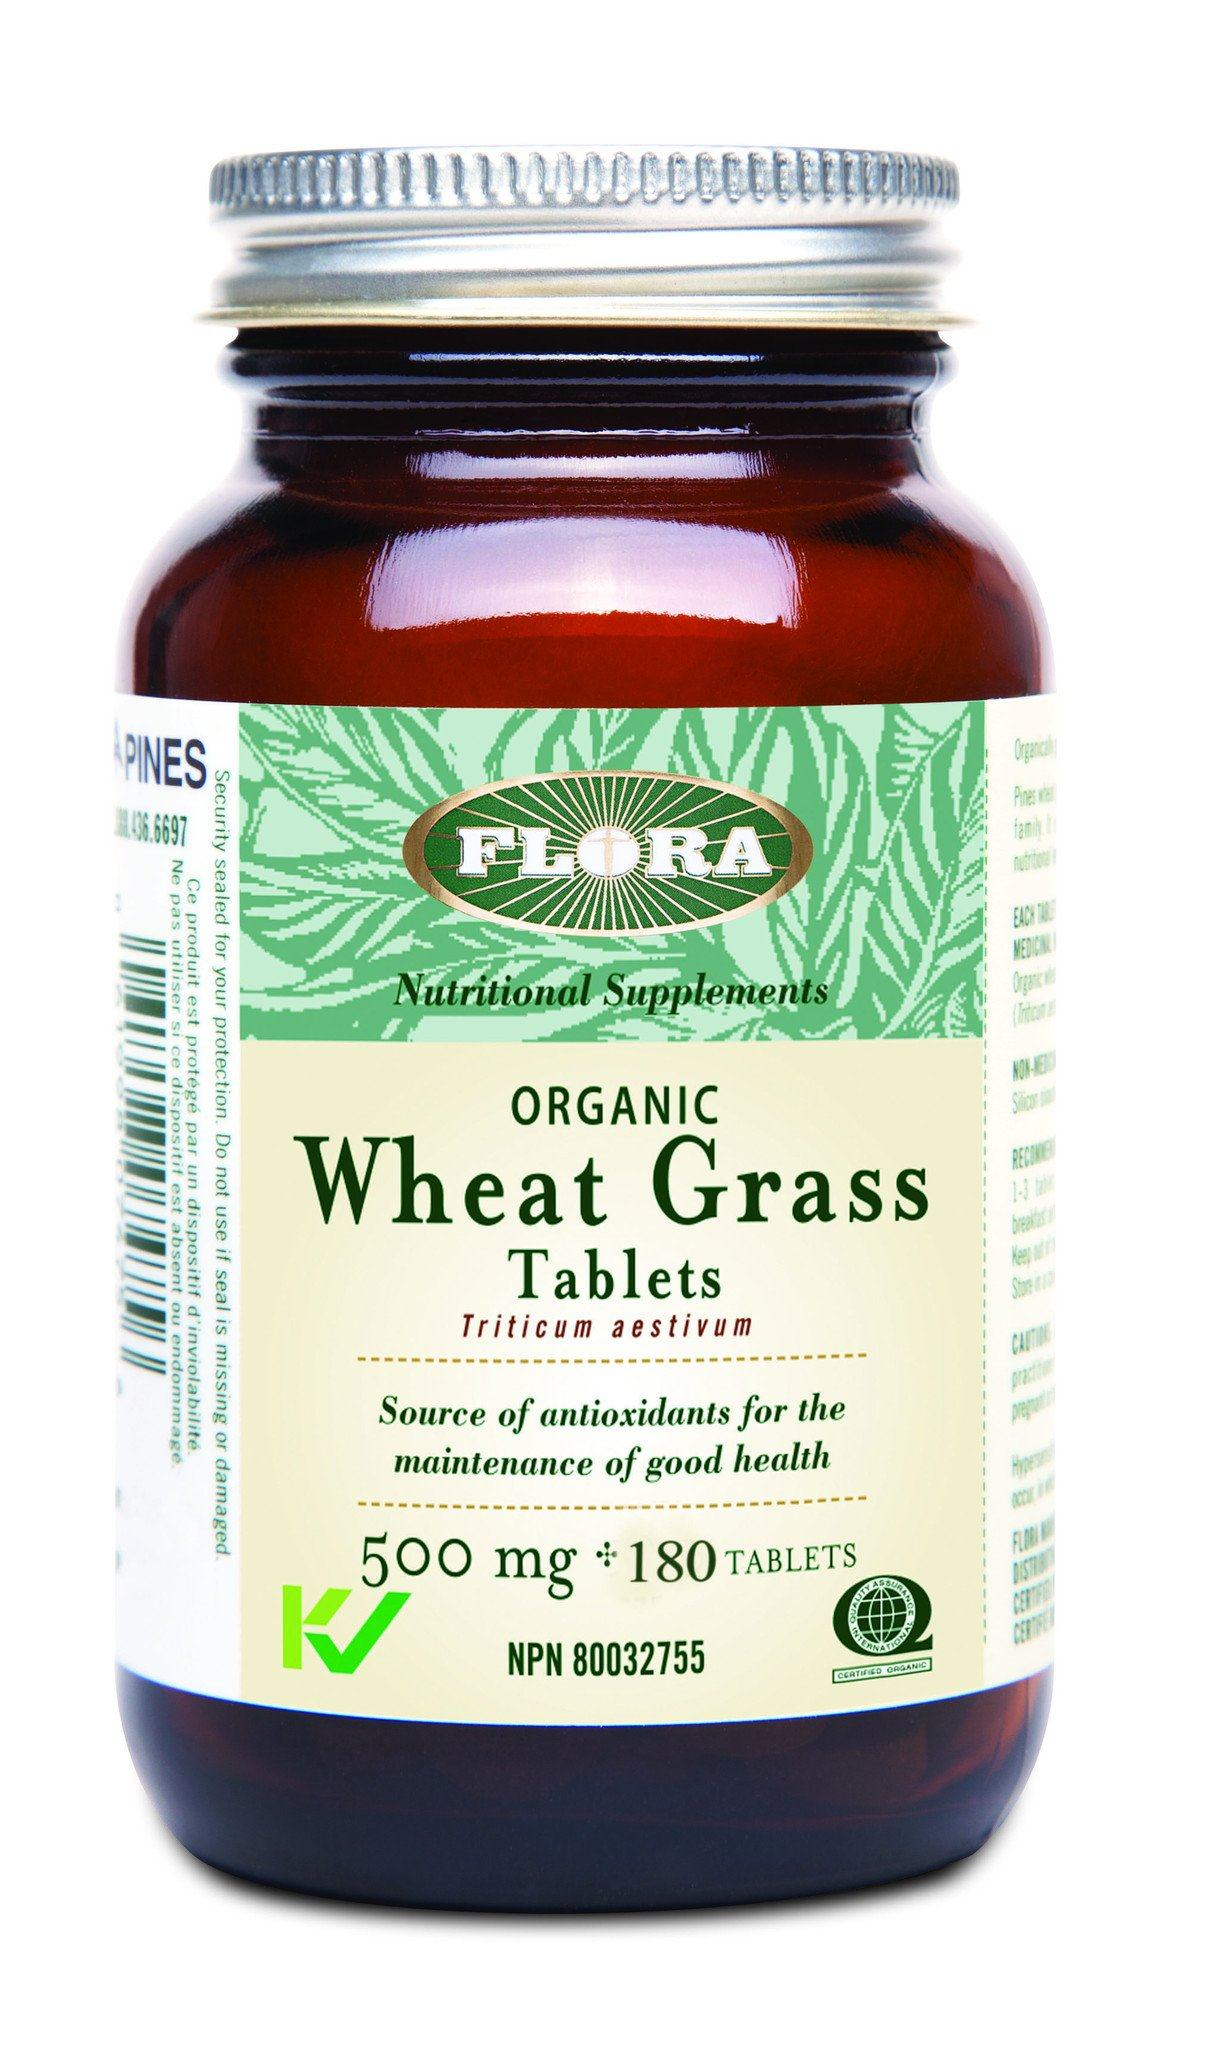 Supplements & Vitamins - Flora - Wheat Grass Tablets, 180tab